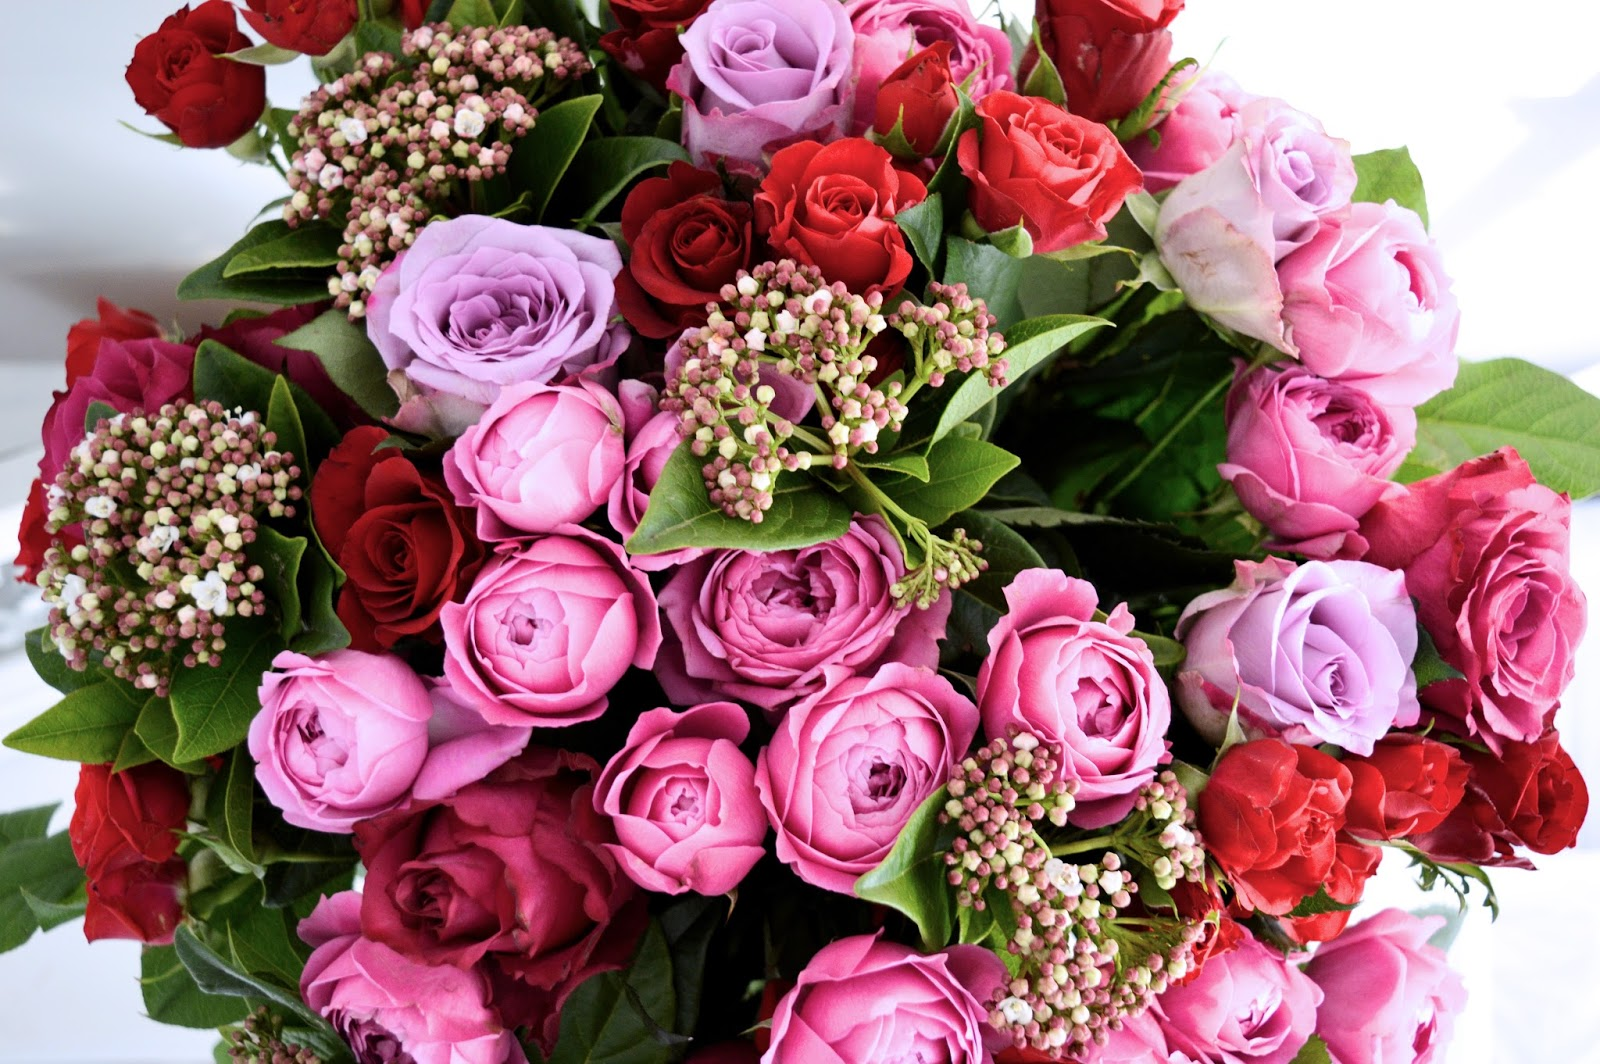 Valentines Day Blooms Cliche Or A Grand Gesture Dalry Rose Blog